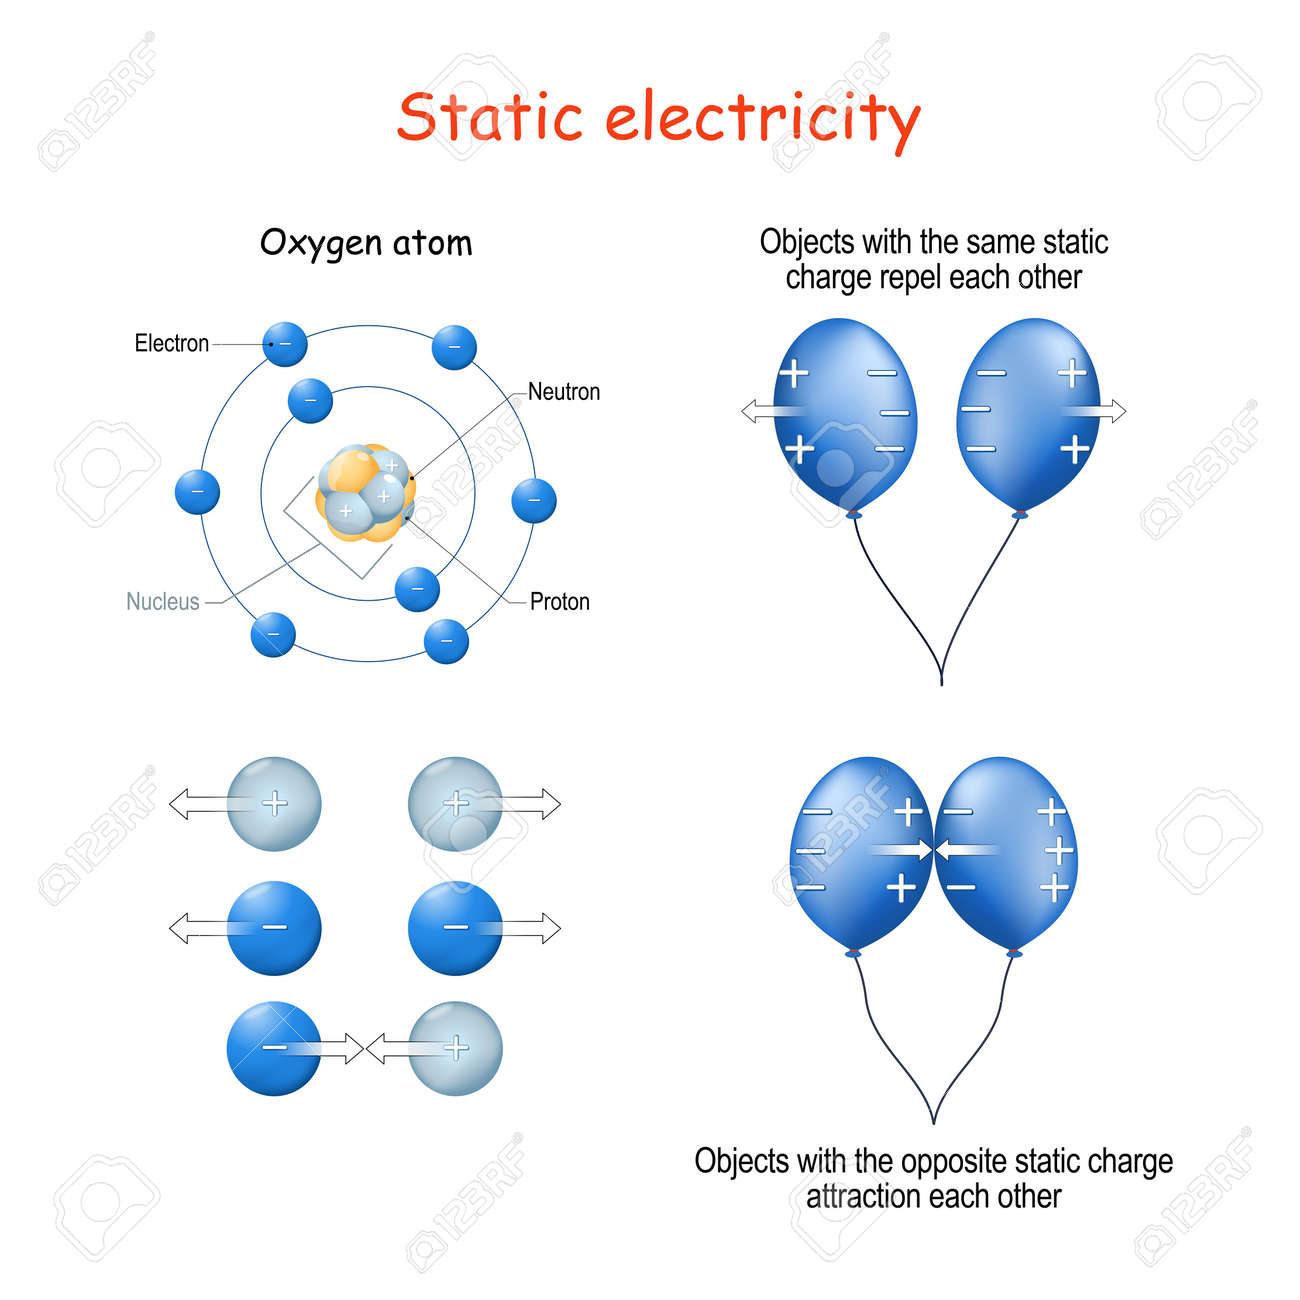 Static electricity for example two blue balloons, structure of Oxygen atom, or protons and electrons. Objects with the opposite static charge attraction each other, but with the same static charge repel each other - 172373365